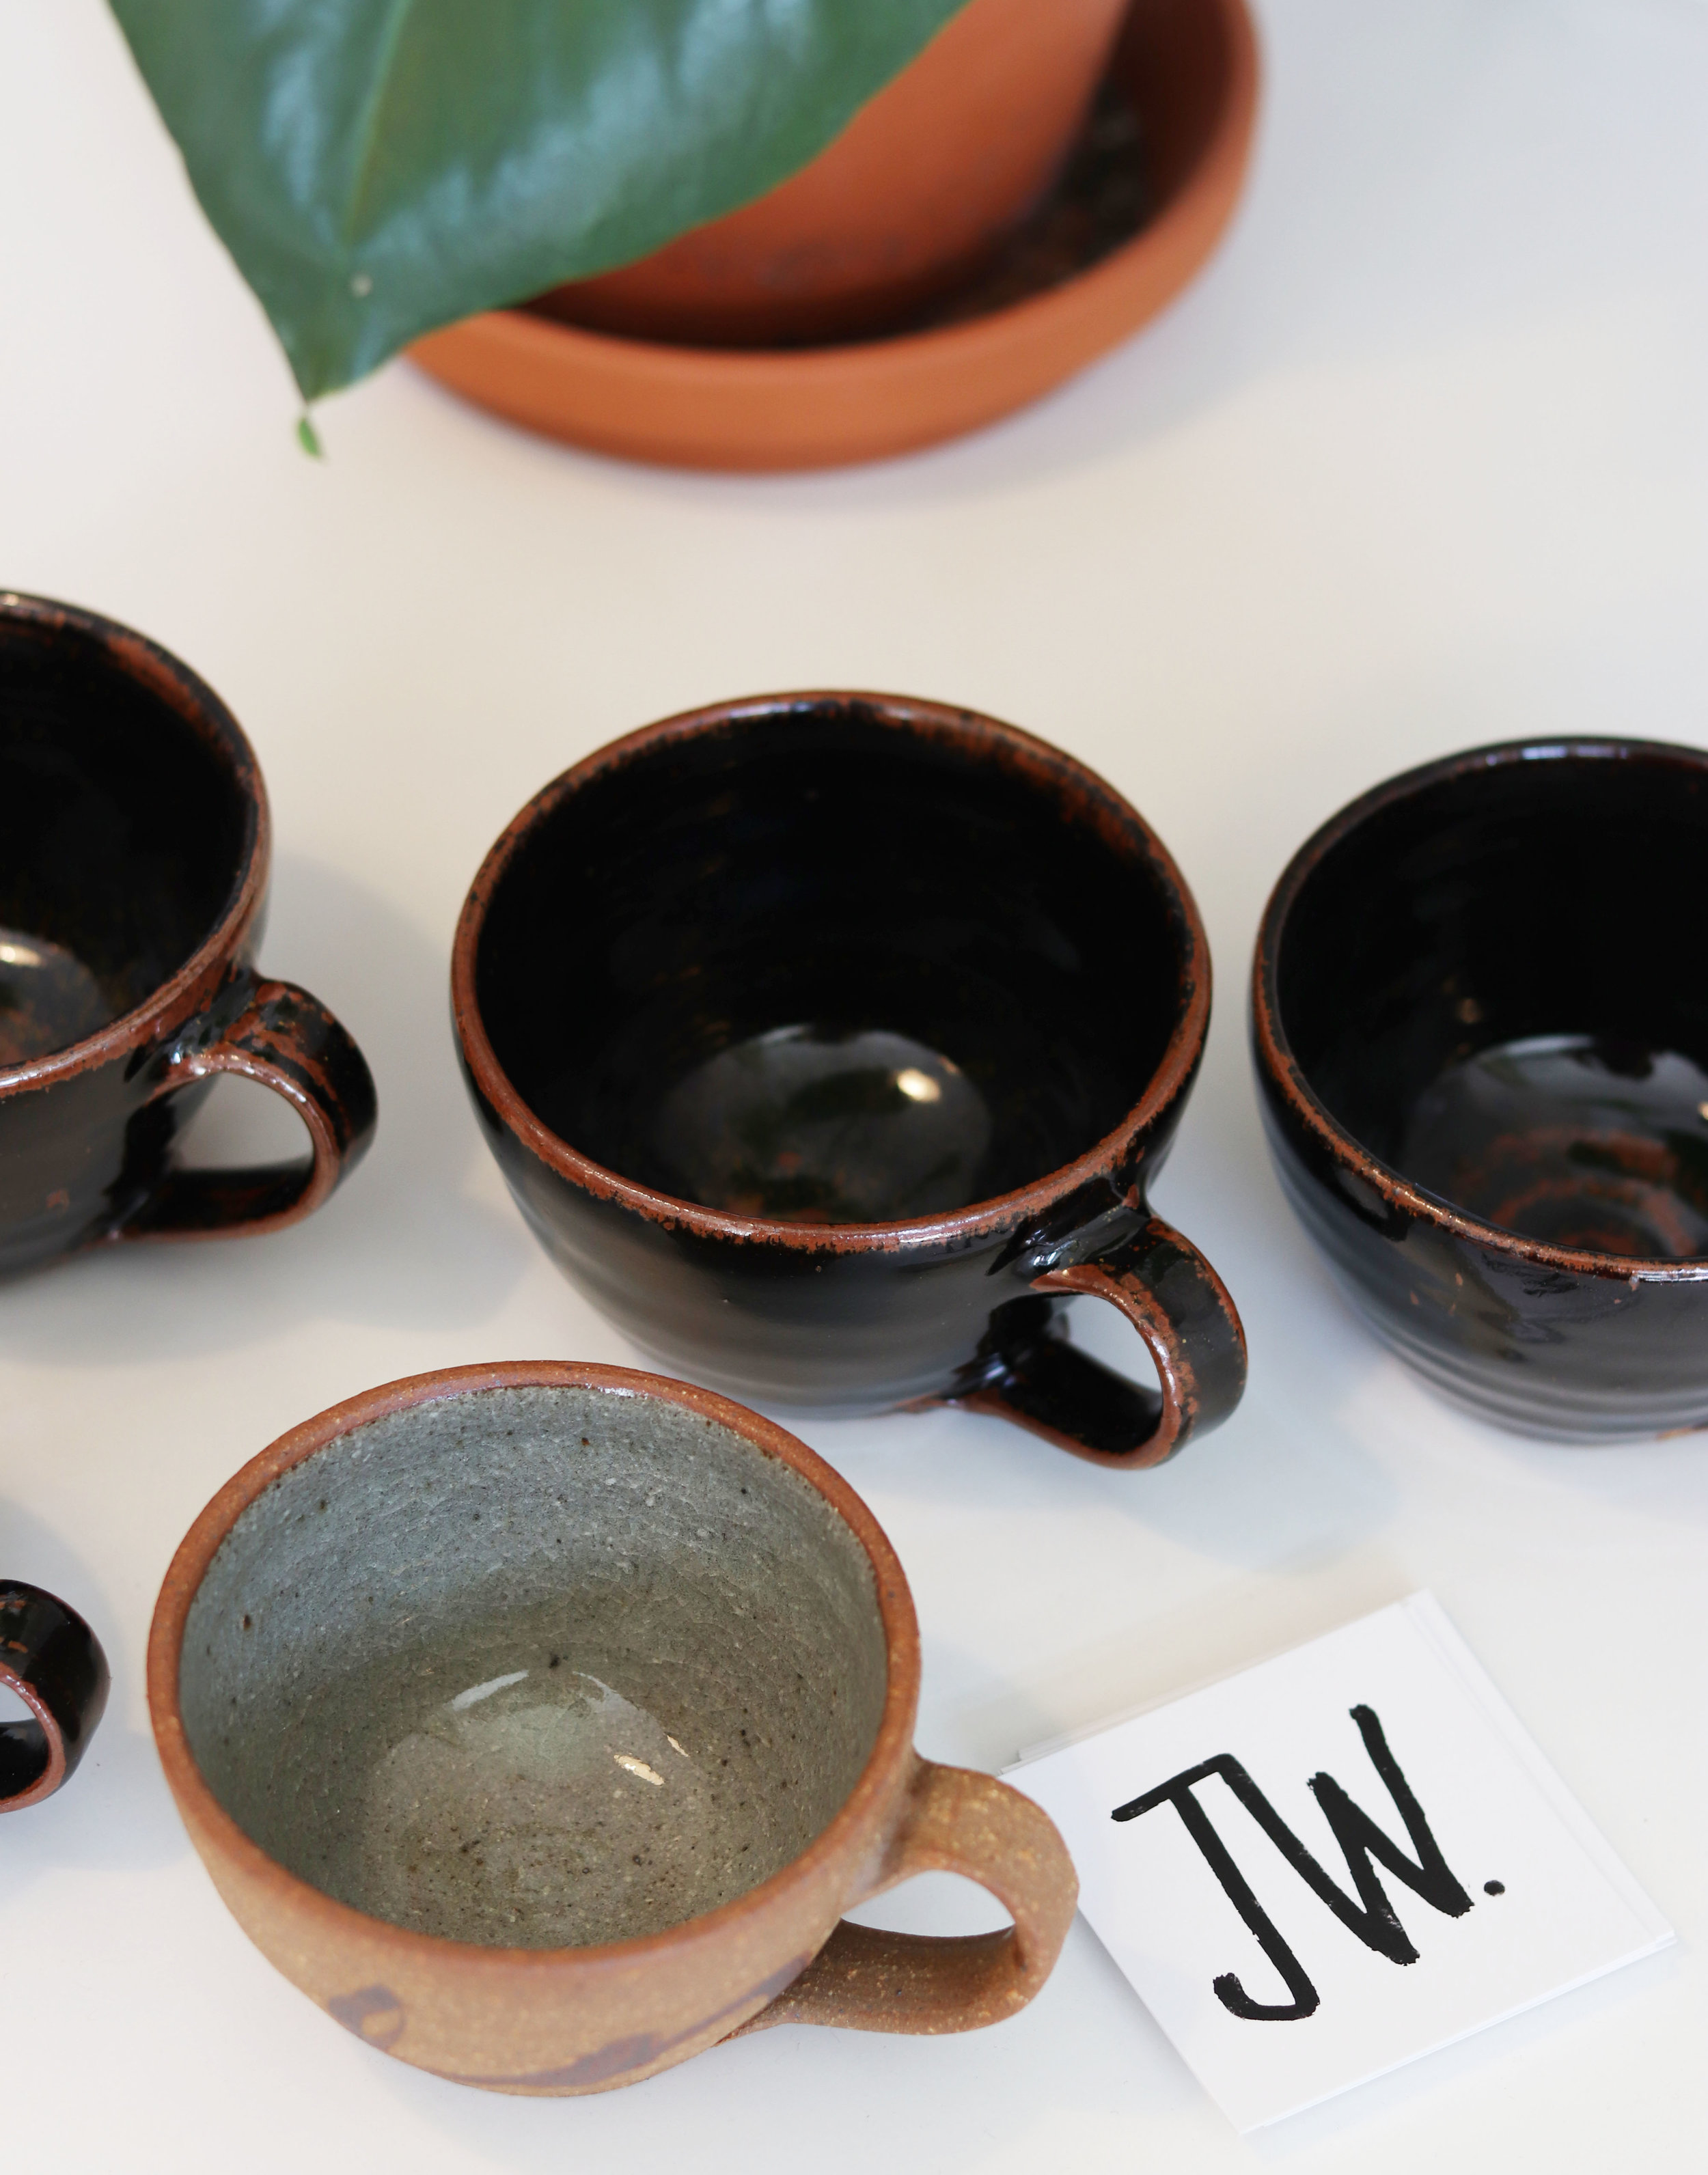 POP-UP SHOPSaturday 13th July - 10am - 3pmJack Welbourne Ceramics@jwceramics